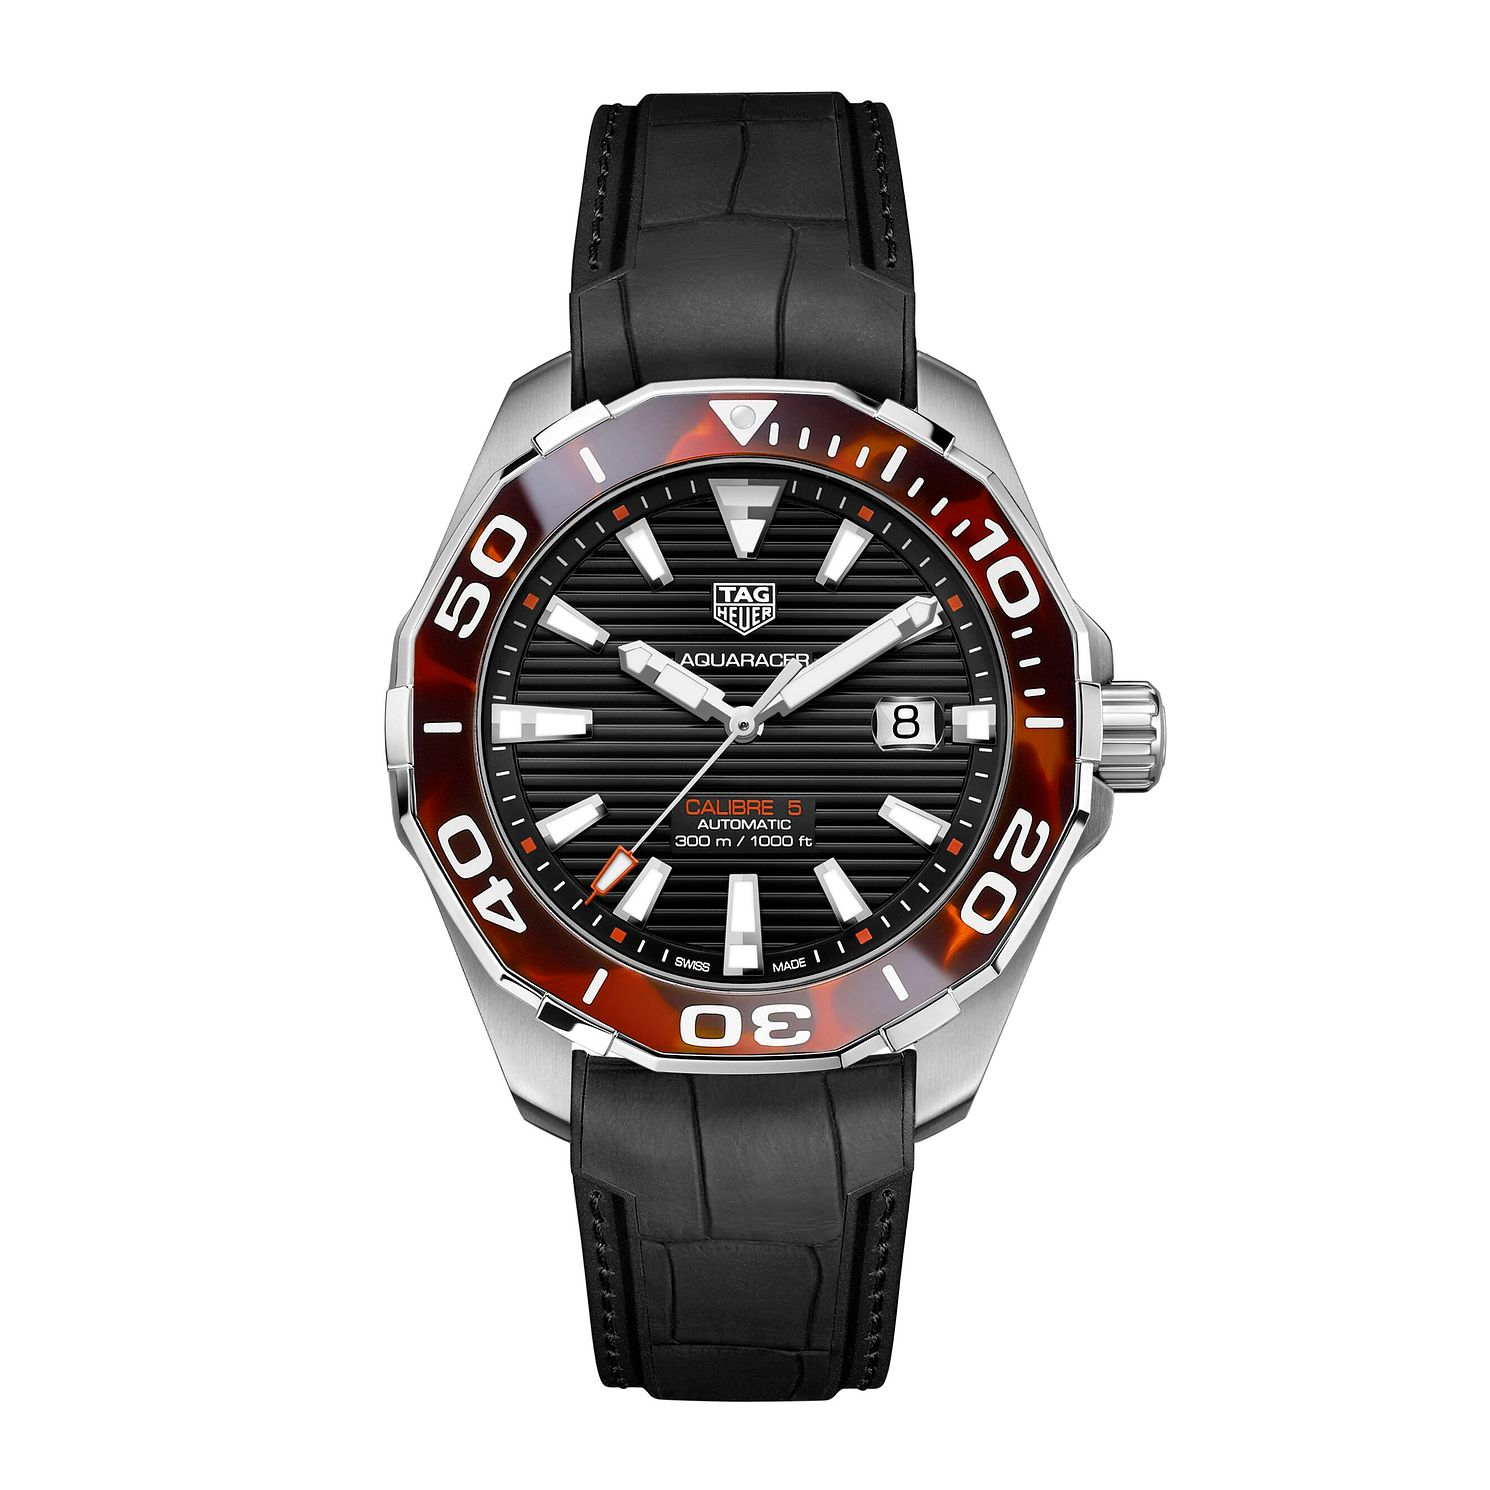 TAG Heuer Aquaracer Men's Black Rubber Strap Watch - Product number 4958489